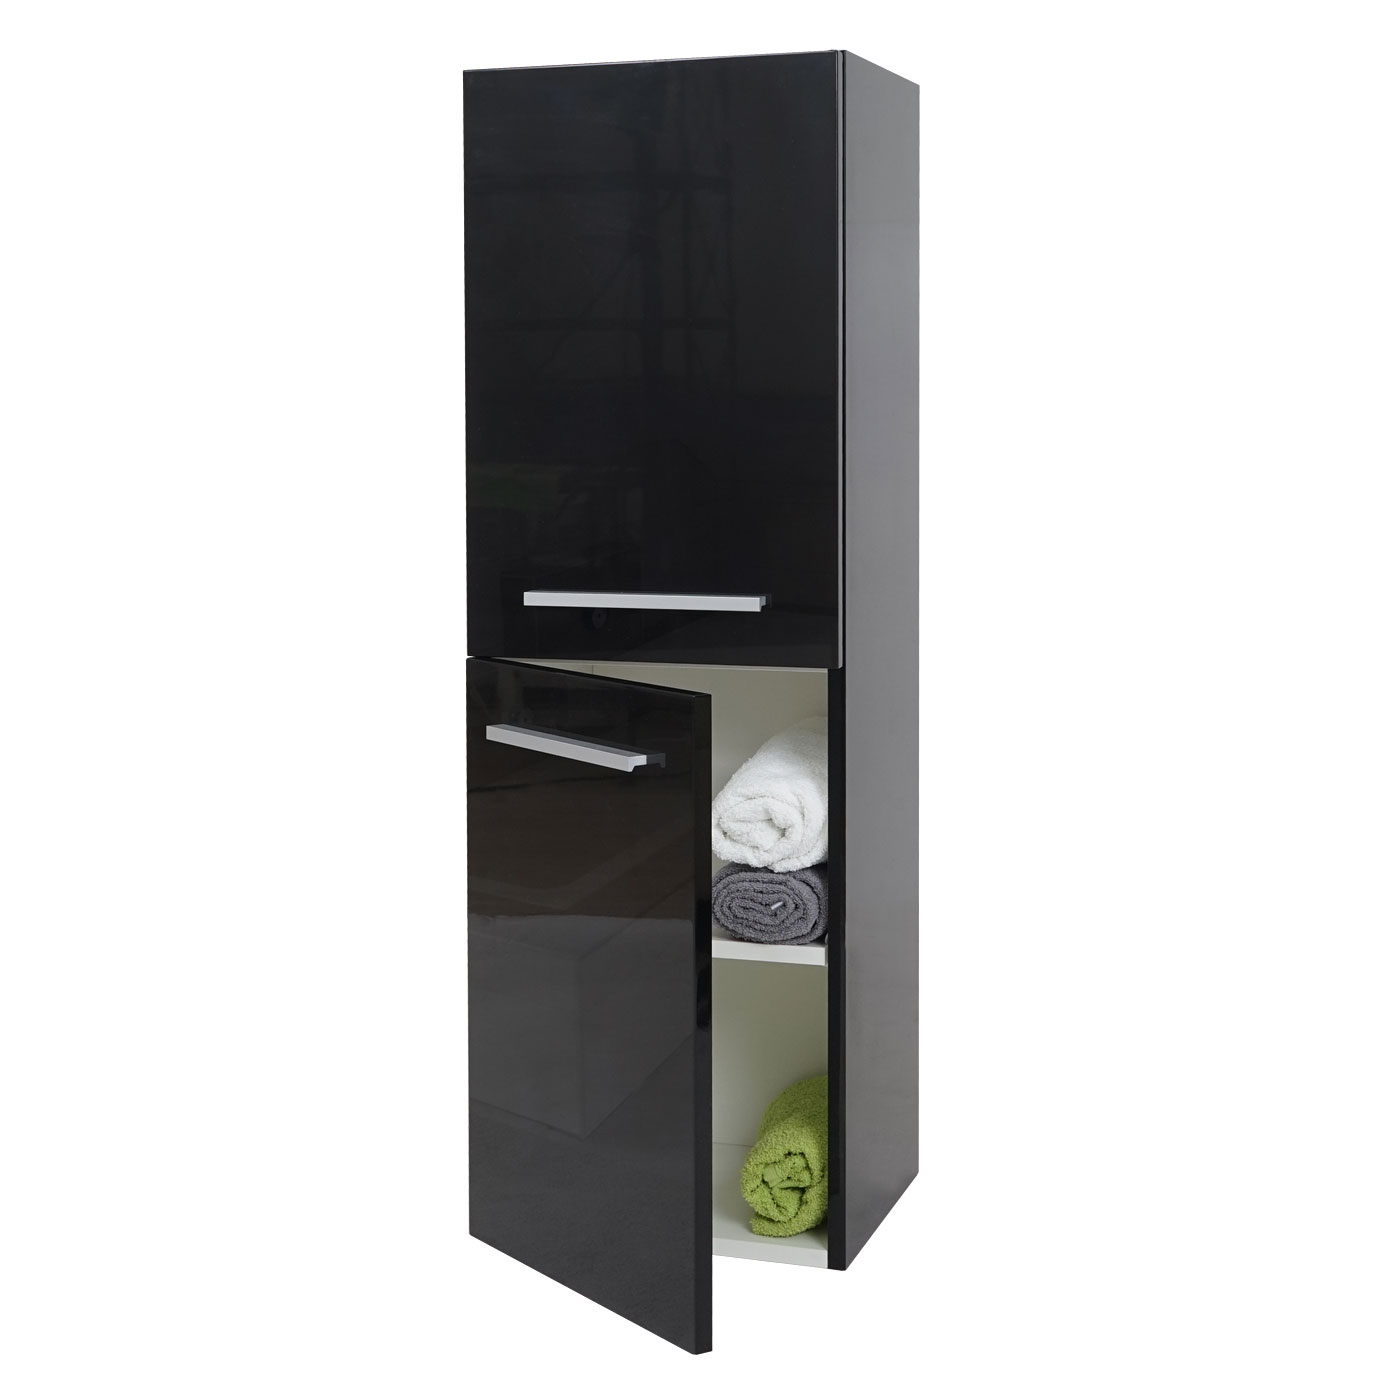 Aldi Badschrank Badschrank Midi Great Excellent Full Size Of Besten Aldi